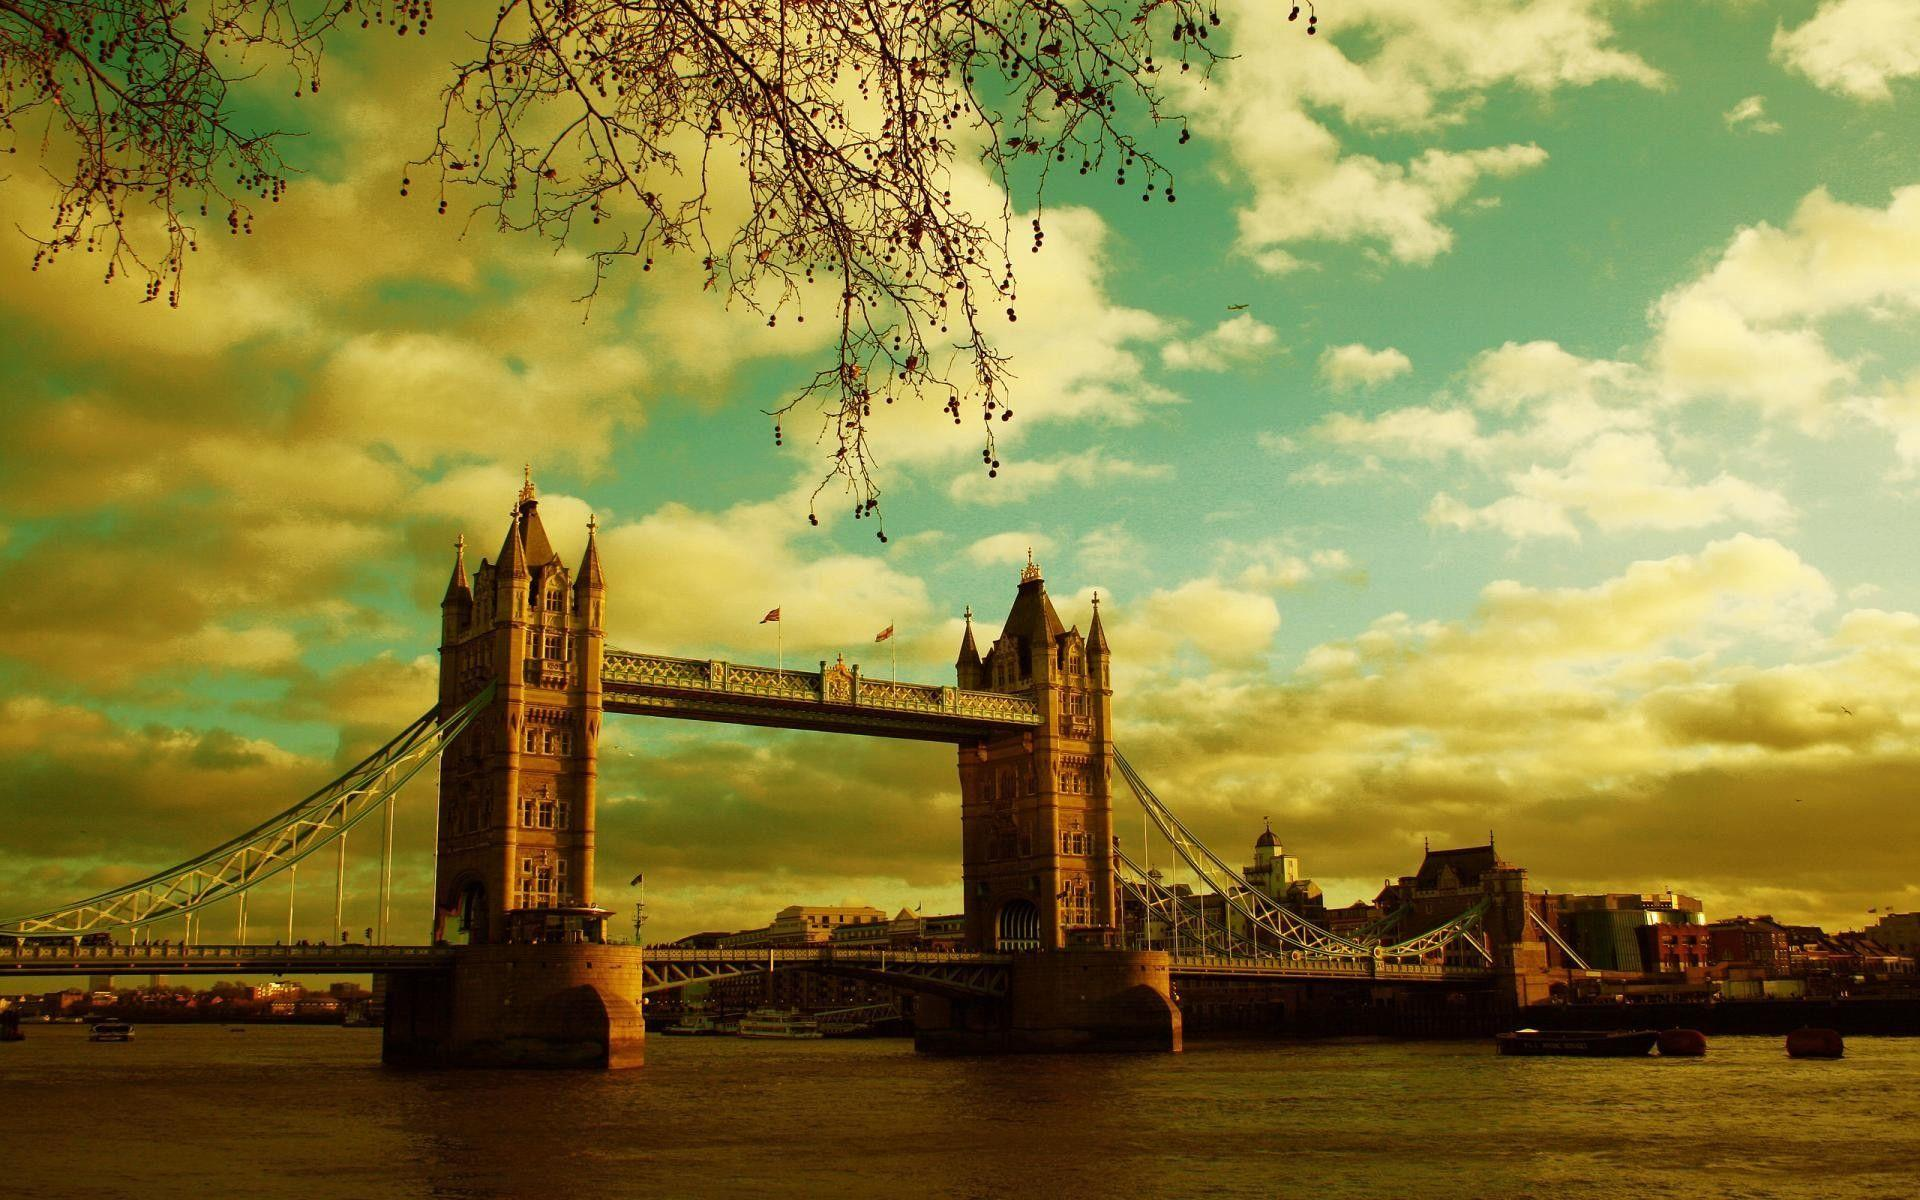 Tower Bridge Wallpapers - Full HD wallpaper search - page 2